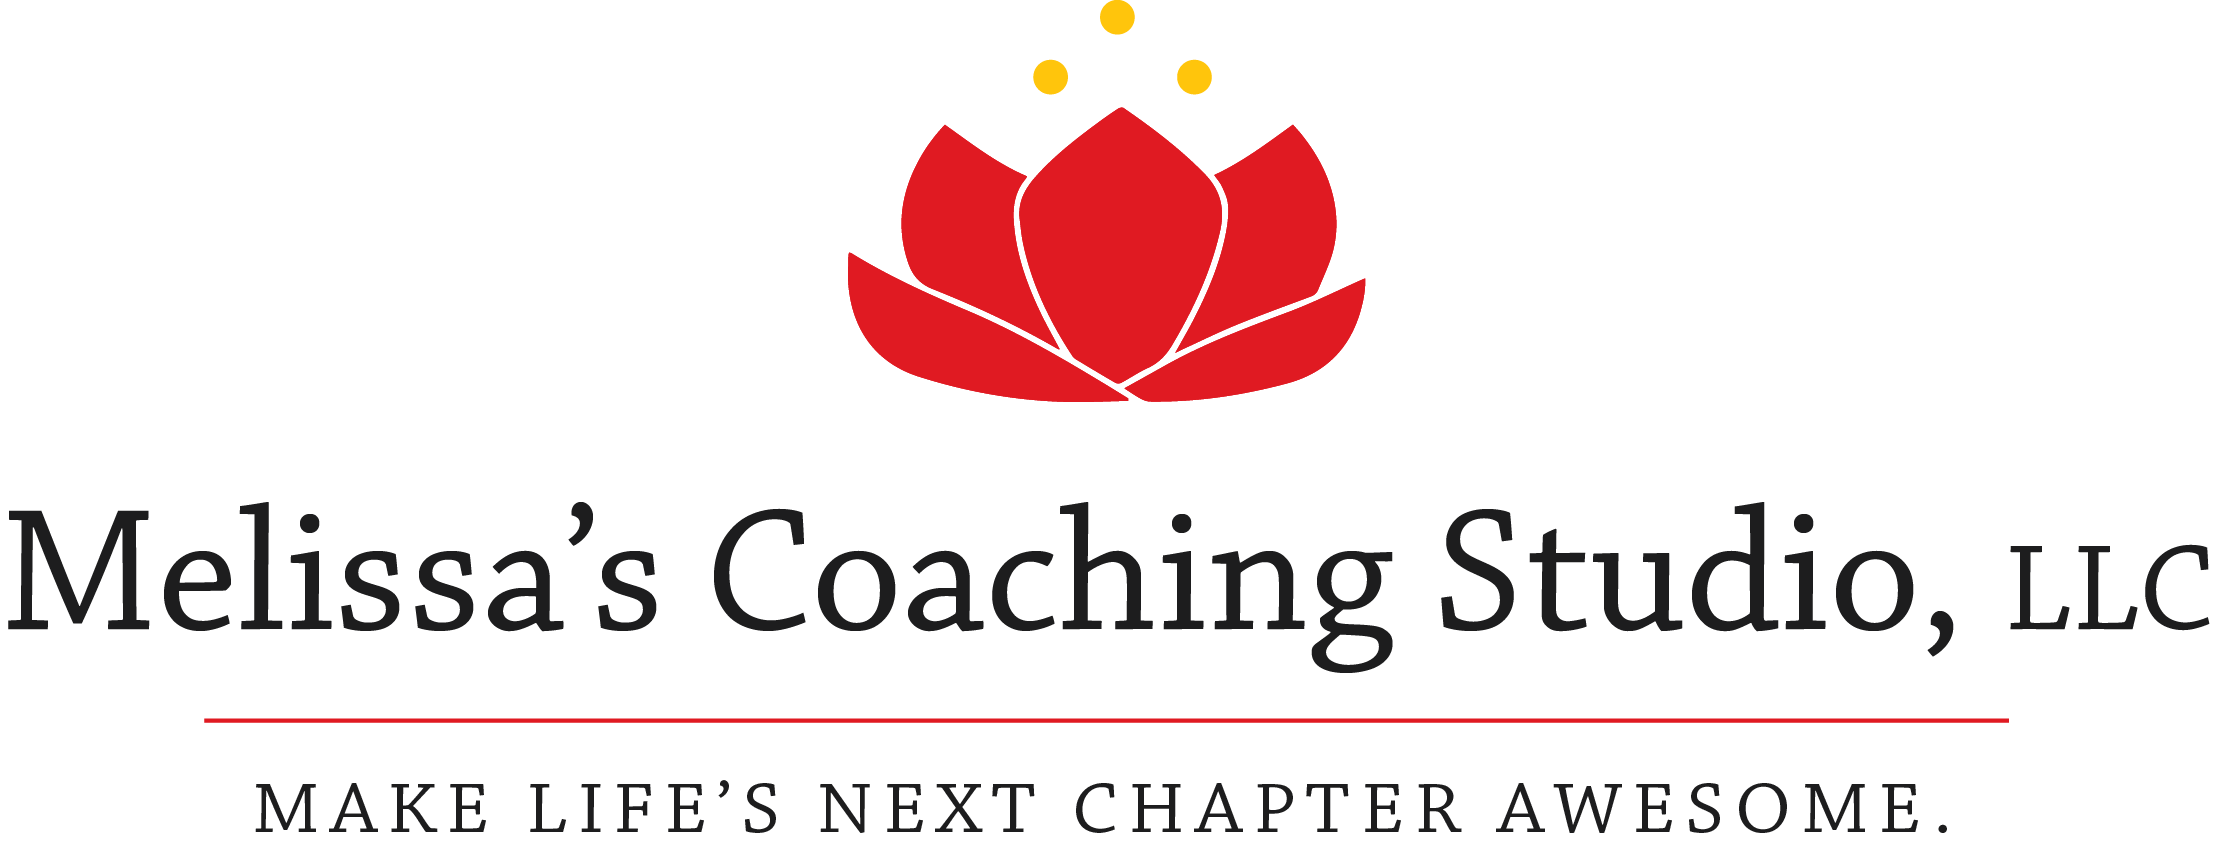 Melissa's Coaching Studio, LLC